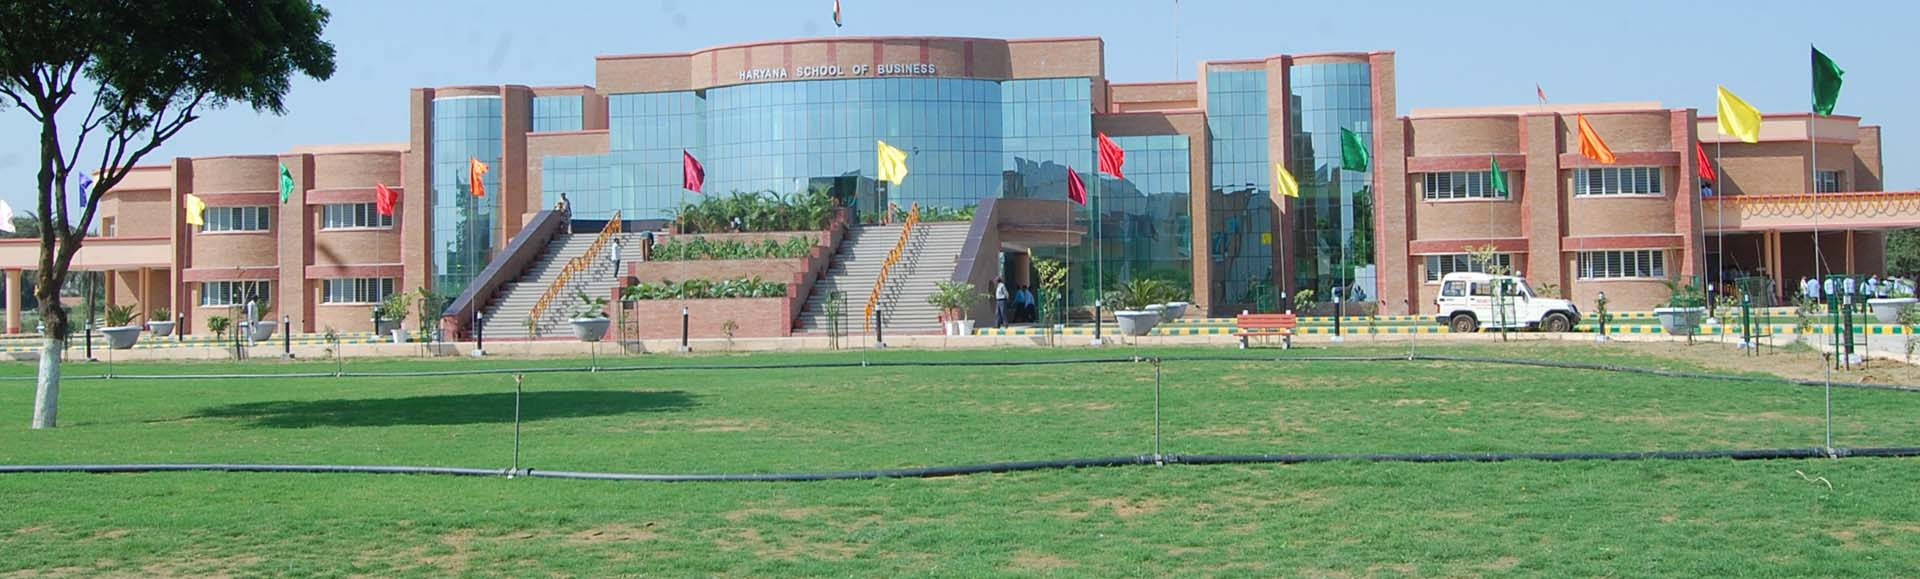 Haryana School of Business, Hisar